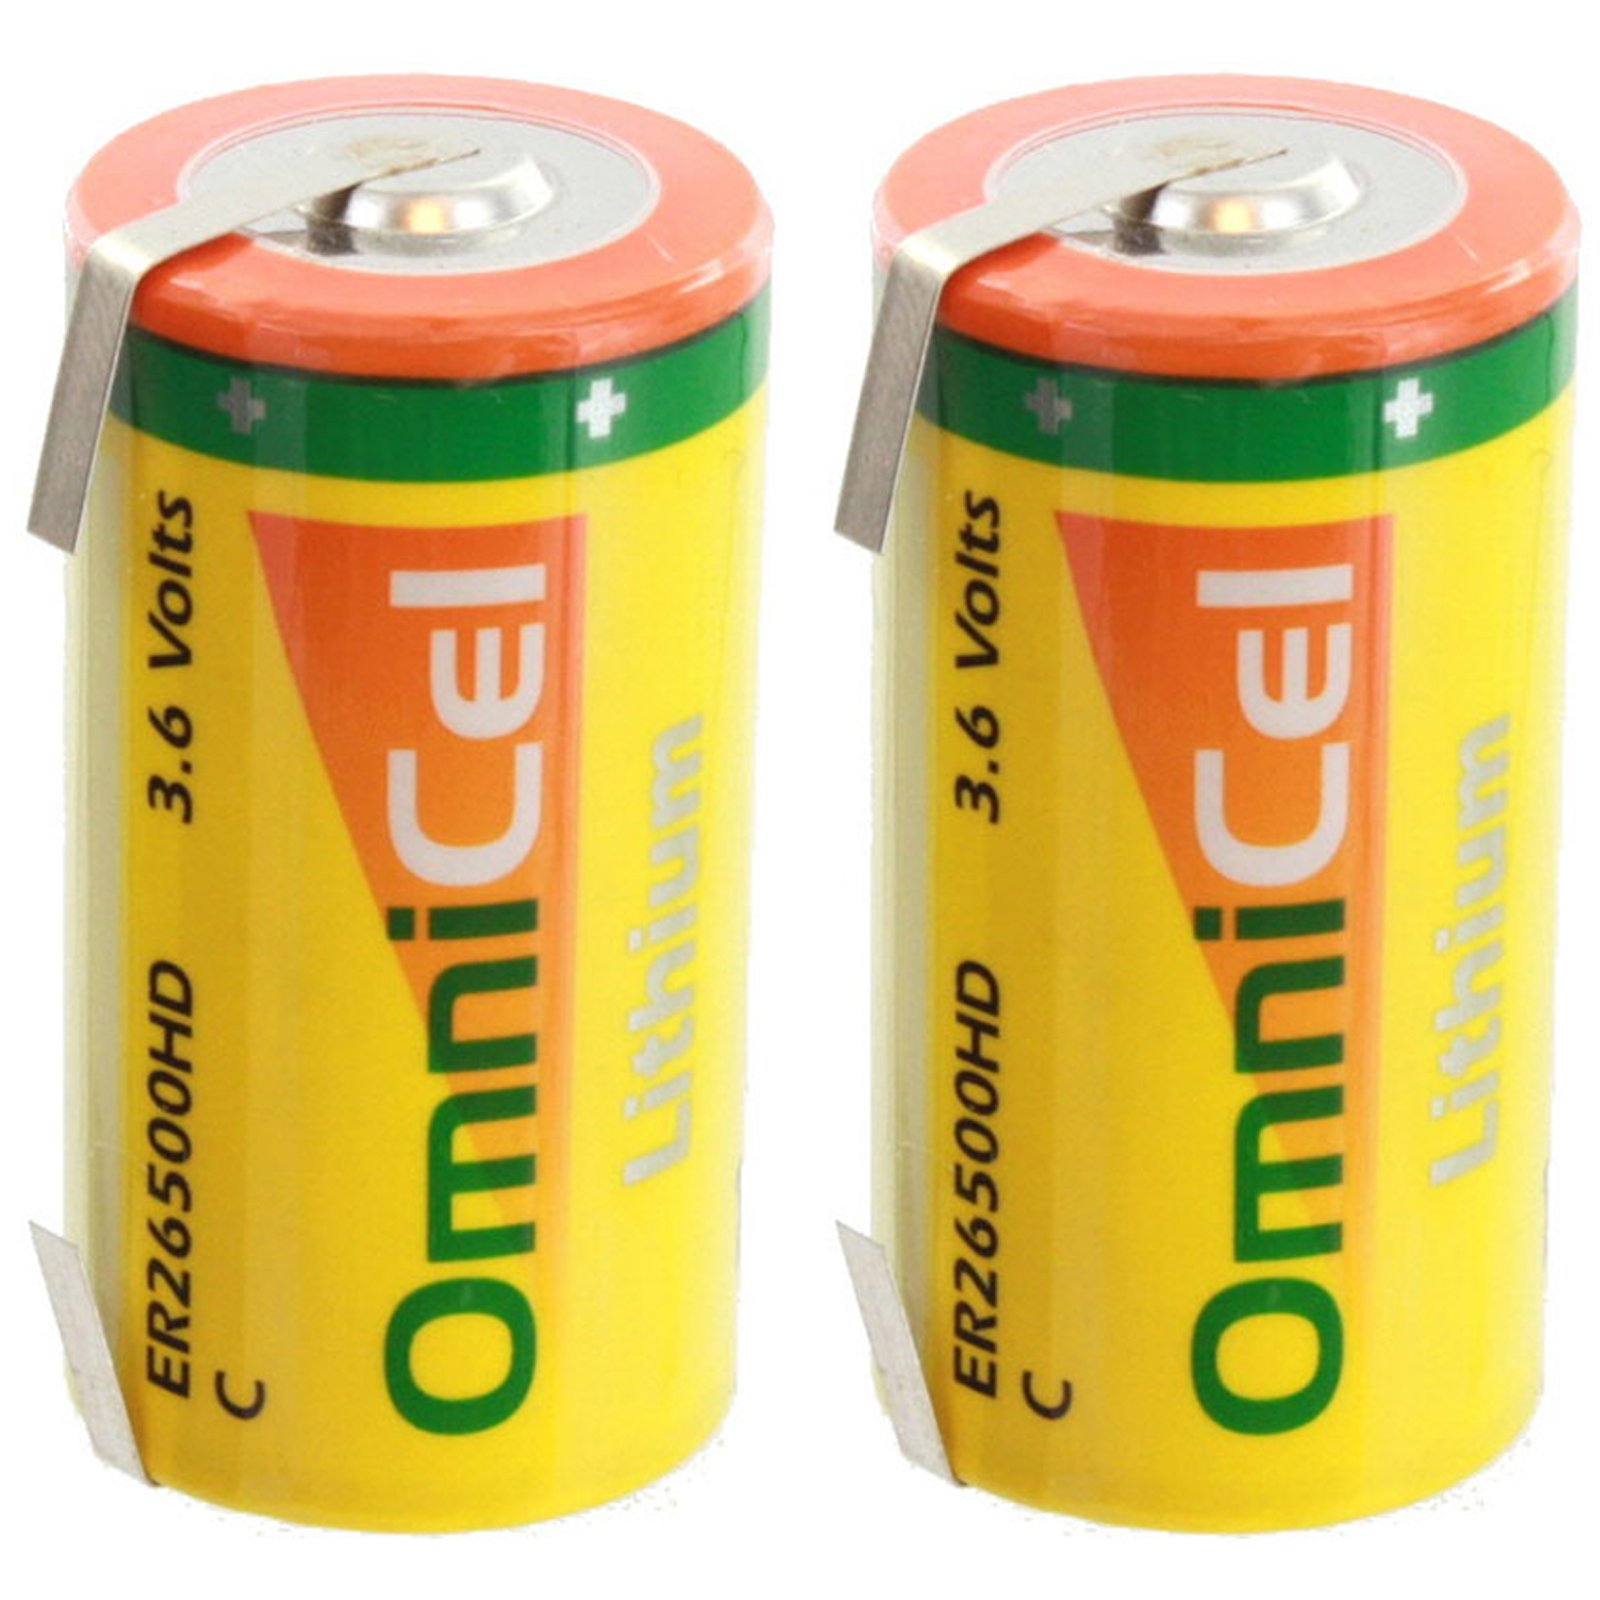 2x OmniCel ER26500HD 3.6V 6.5Ah Size C Lithium Battery with Tabs For Tracking Devices for Hunting Dogs, Carbon Monoxide Detectors, Intrusion Sensors, Invisible Fencing,Smart Utility Metering